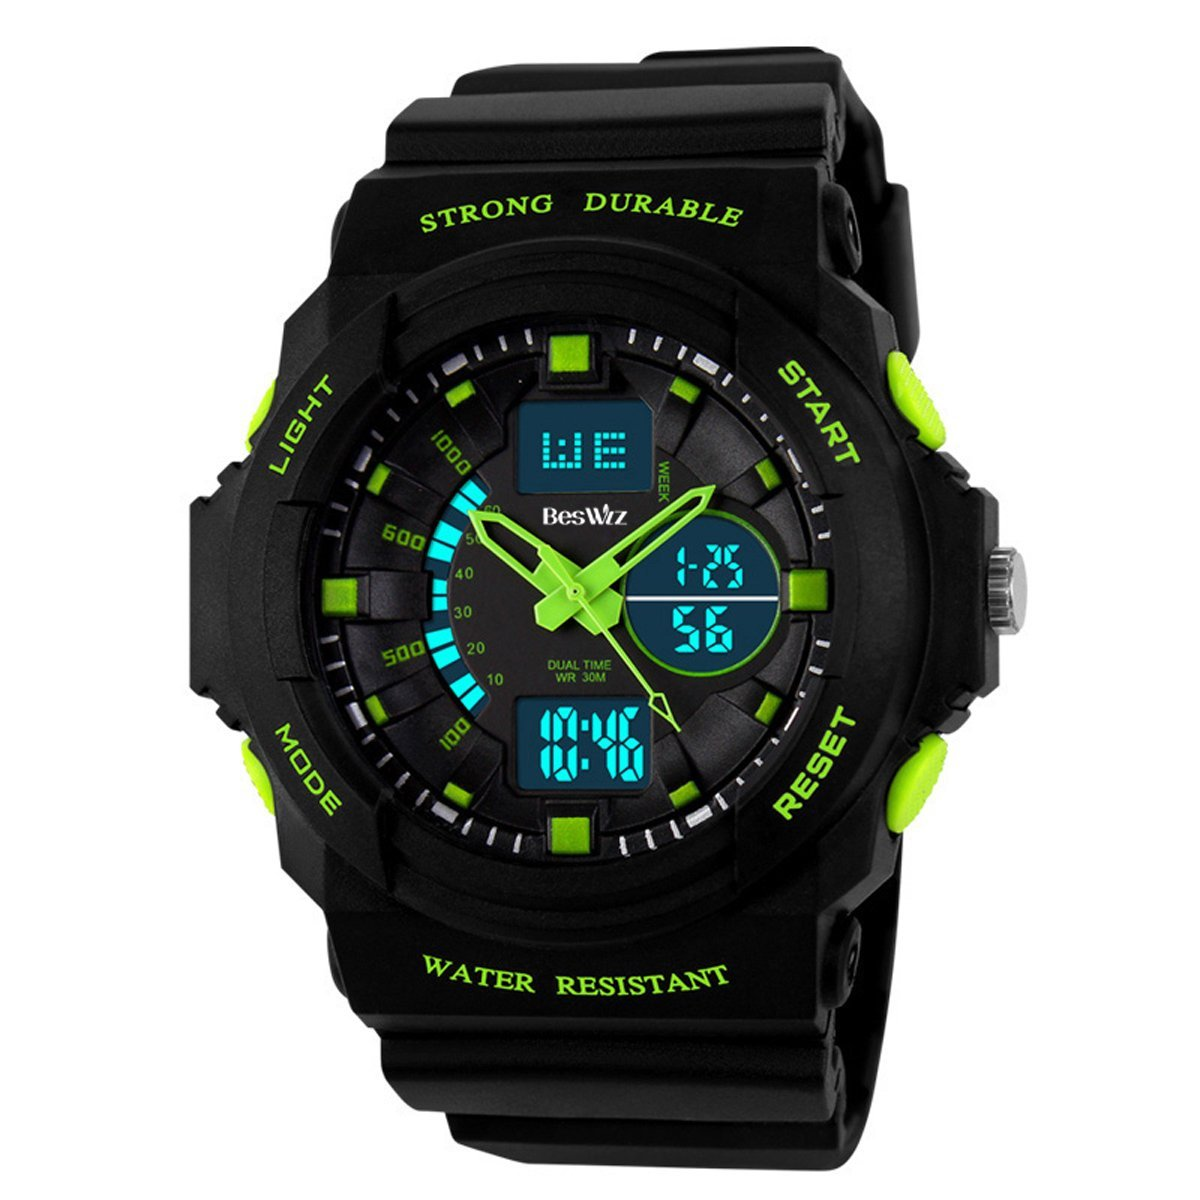 BesWLZ Multi Function Mens Military DualTime Digital Analog Chronograph Sport Wrist Watch 50M Water Resistant Waterproof for Boy Girls Child Kids Gift (Green) by BesWlz